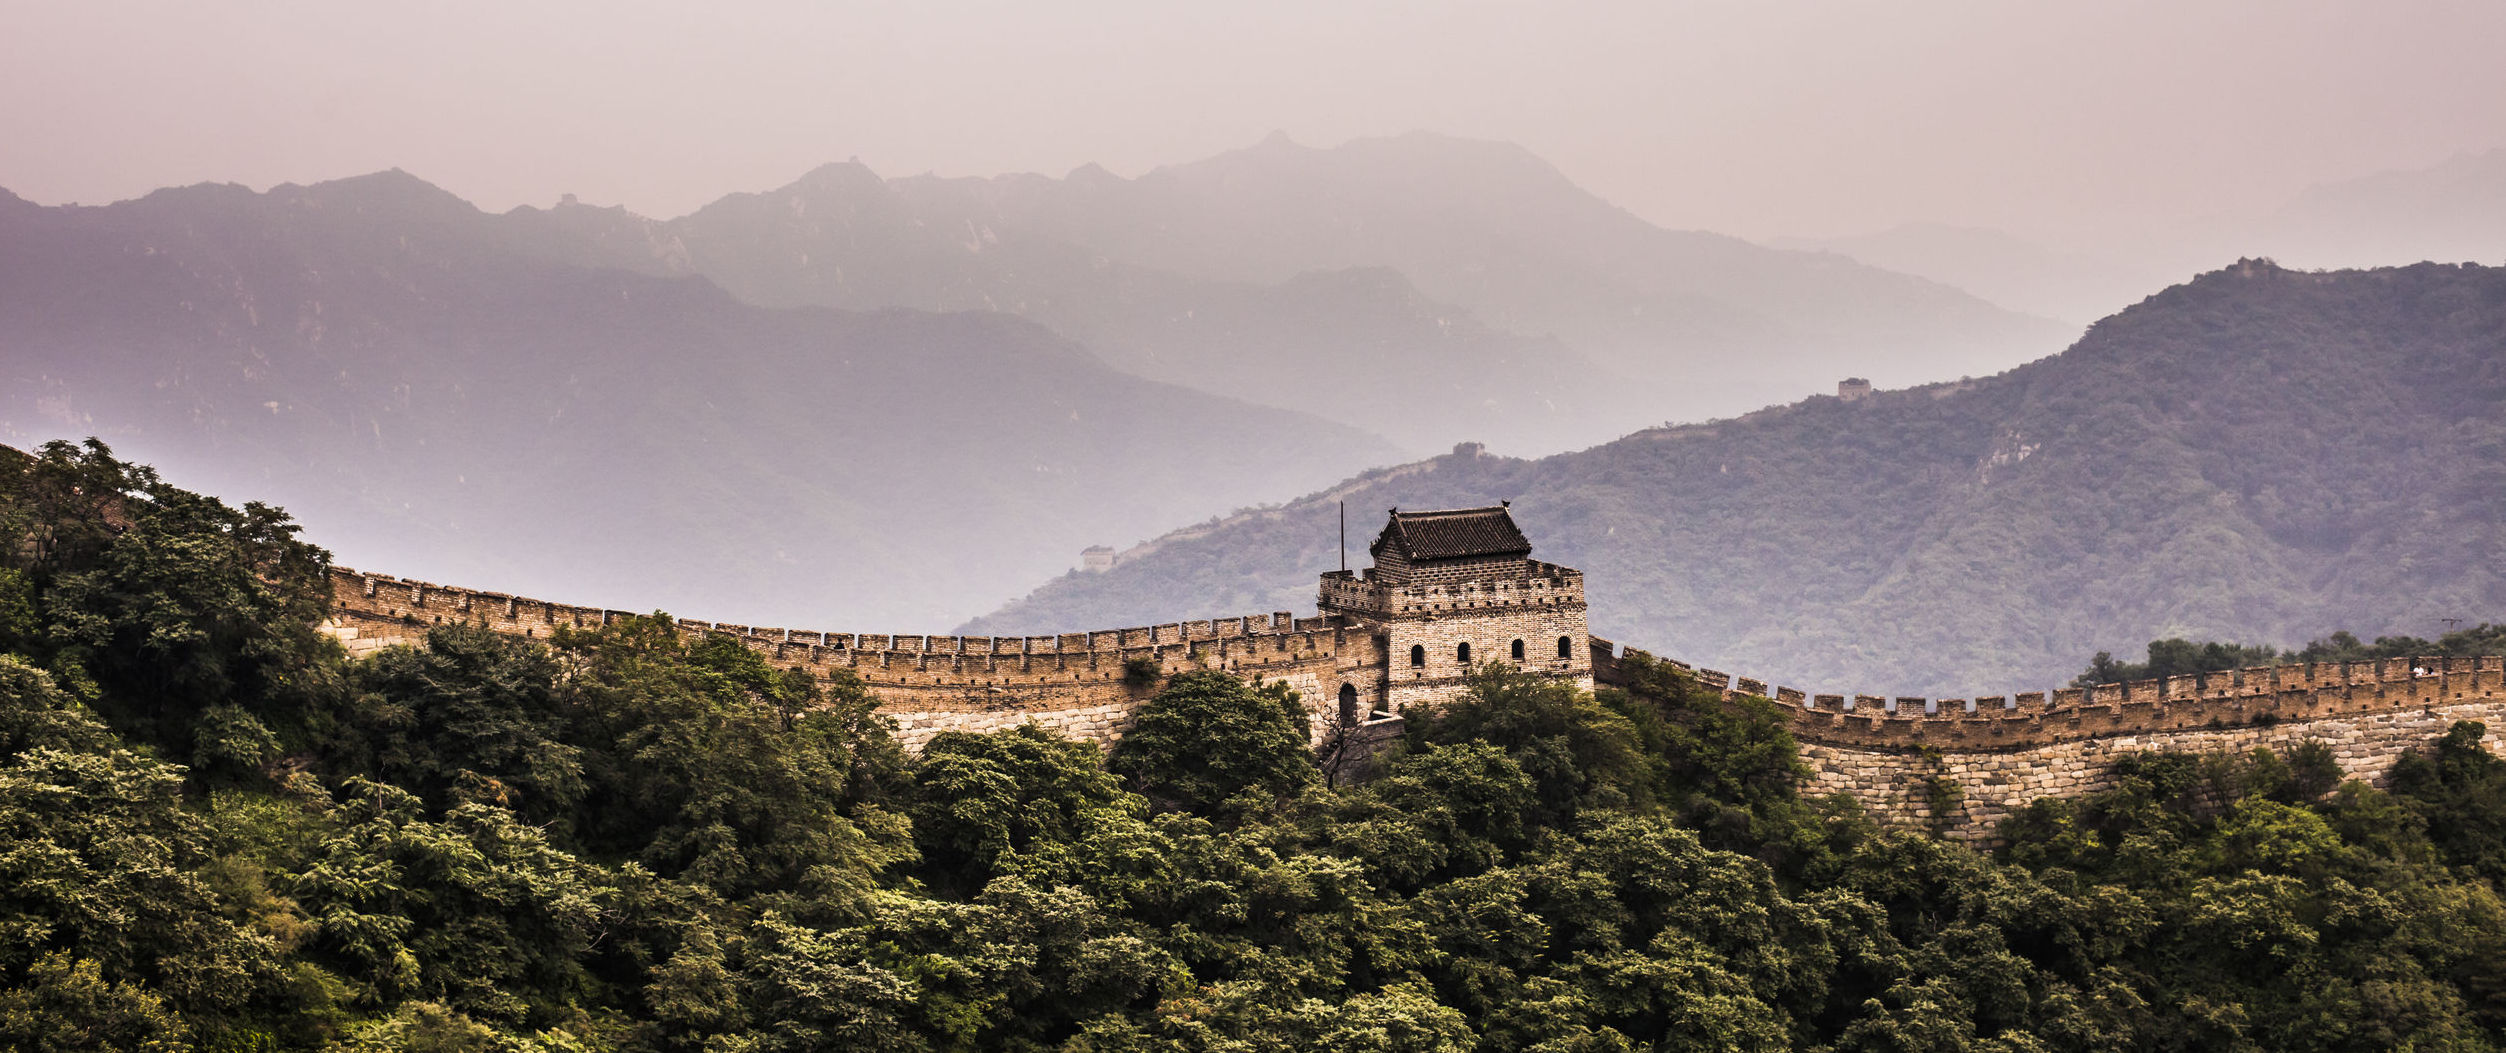 mutianyu-great-wall-china-visit